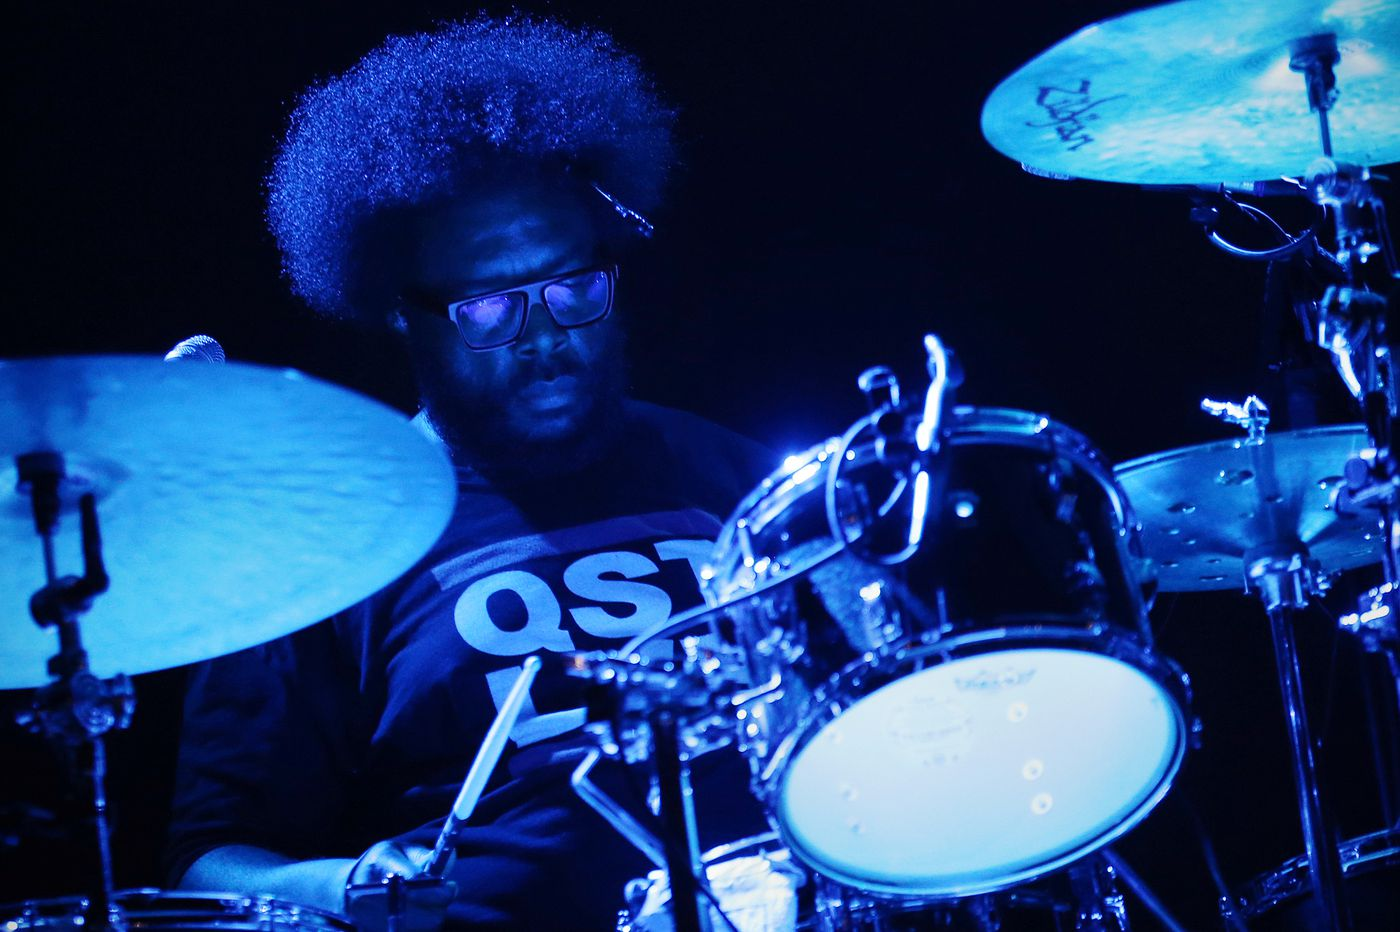 Party like Questlove with his new book on cooking and entertaining